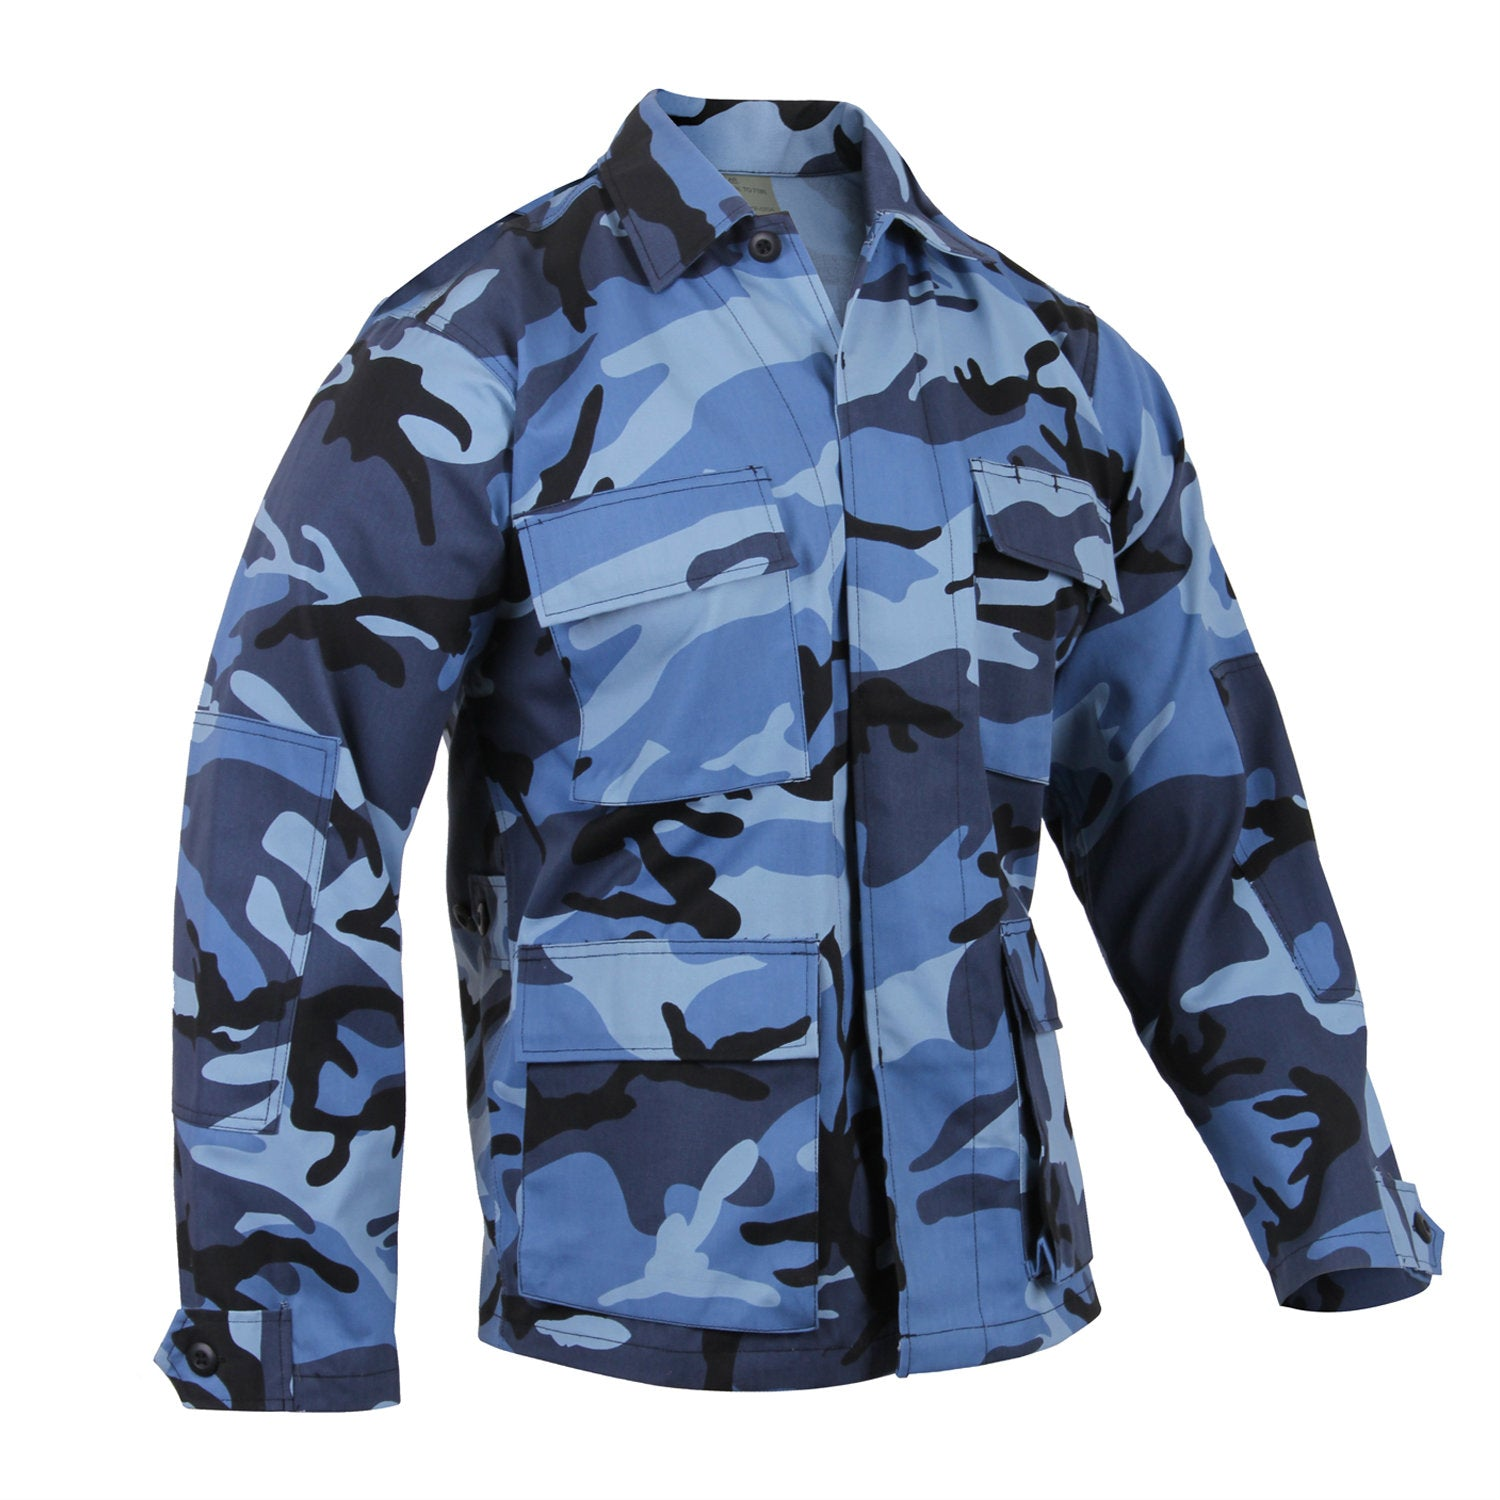 Sky Blue Camouflage BDU Shirt - Indy Army Navy